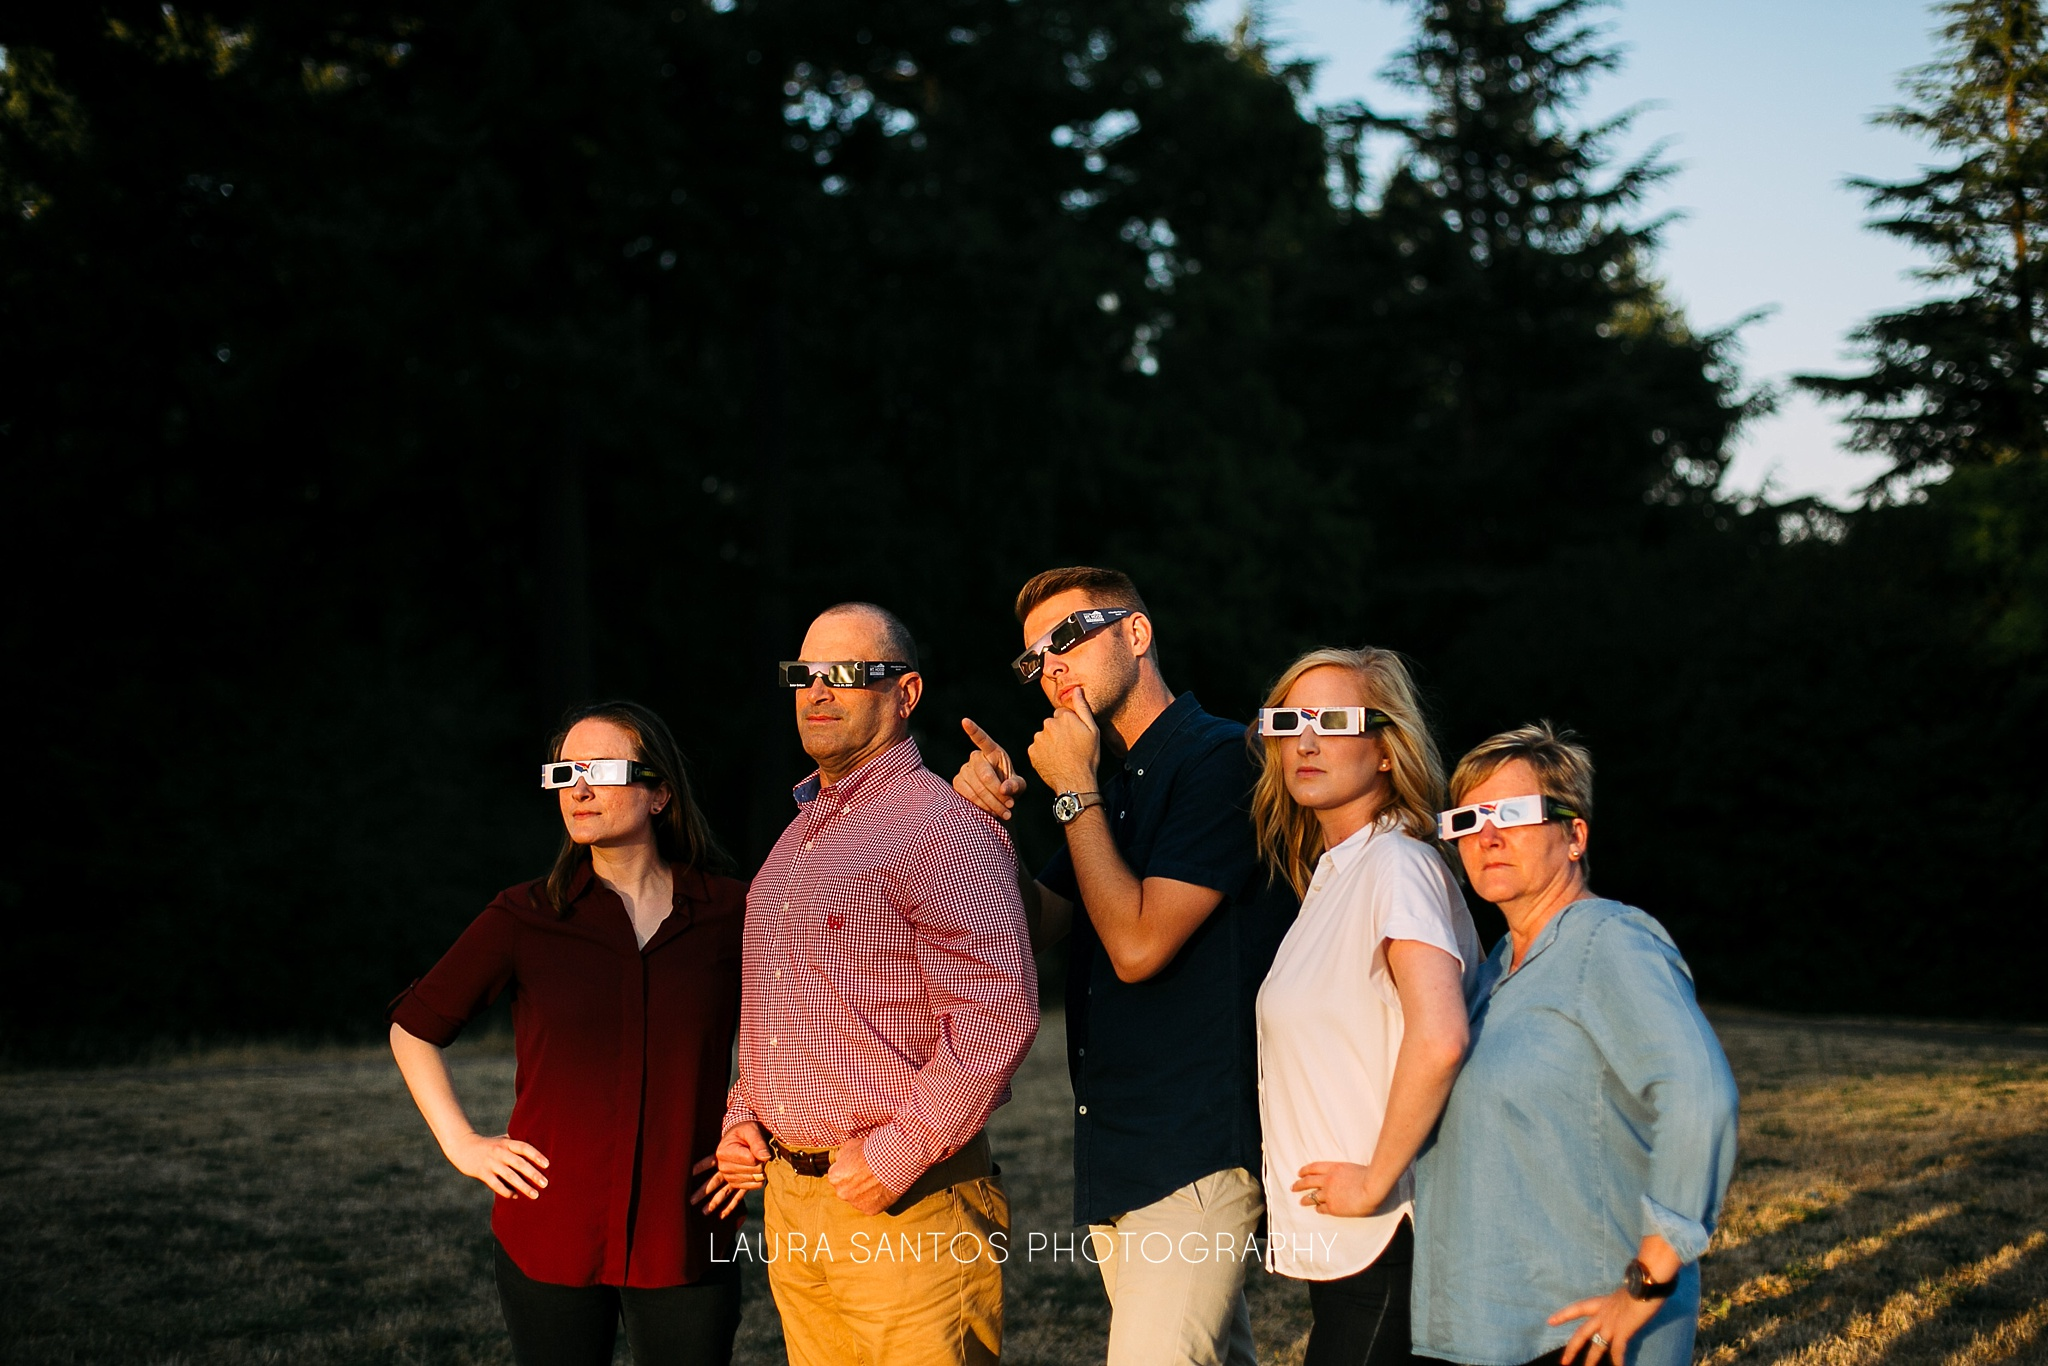 Laura Santos Photography Portland Oregon Family Photographer_0055.jpg